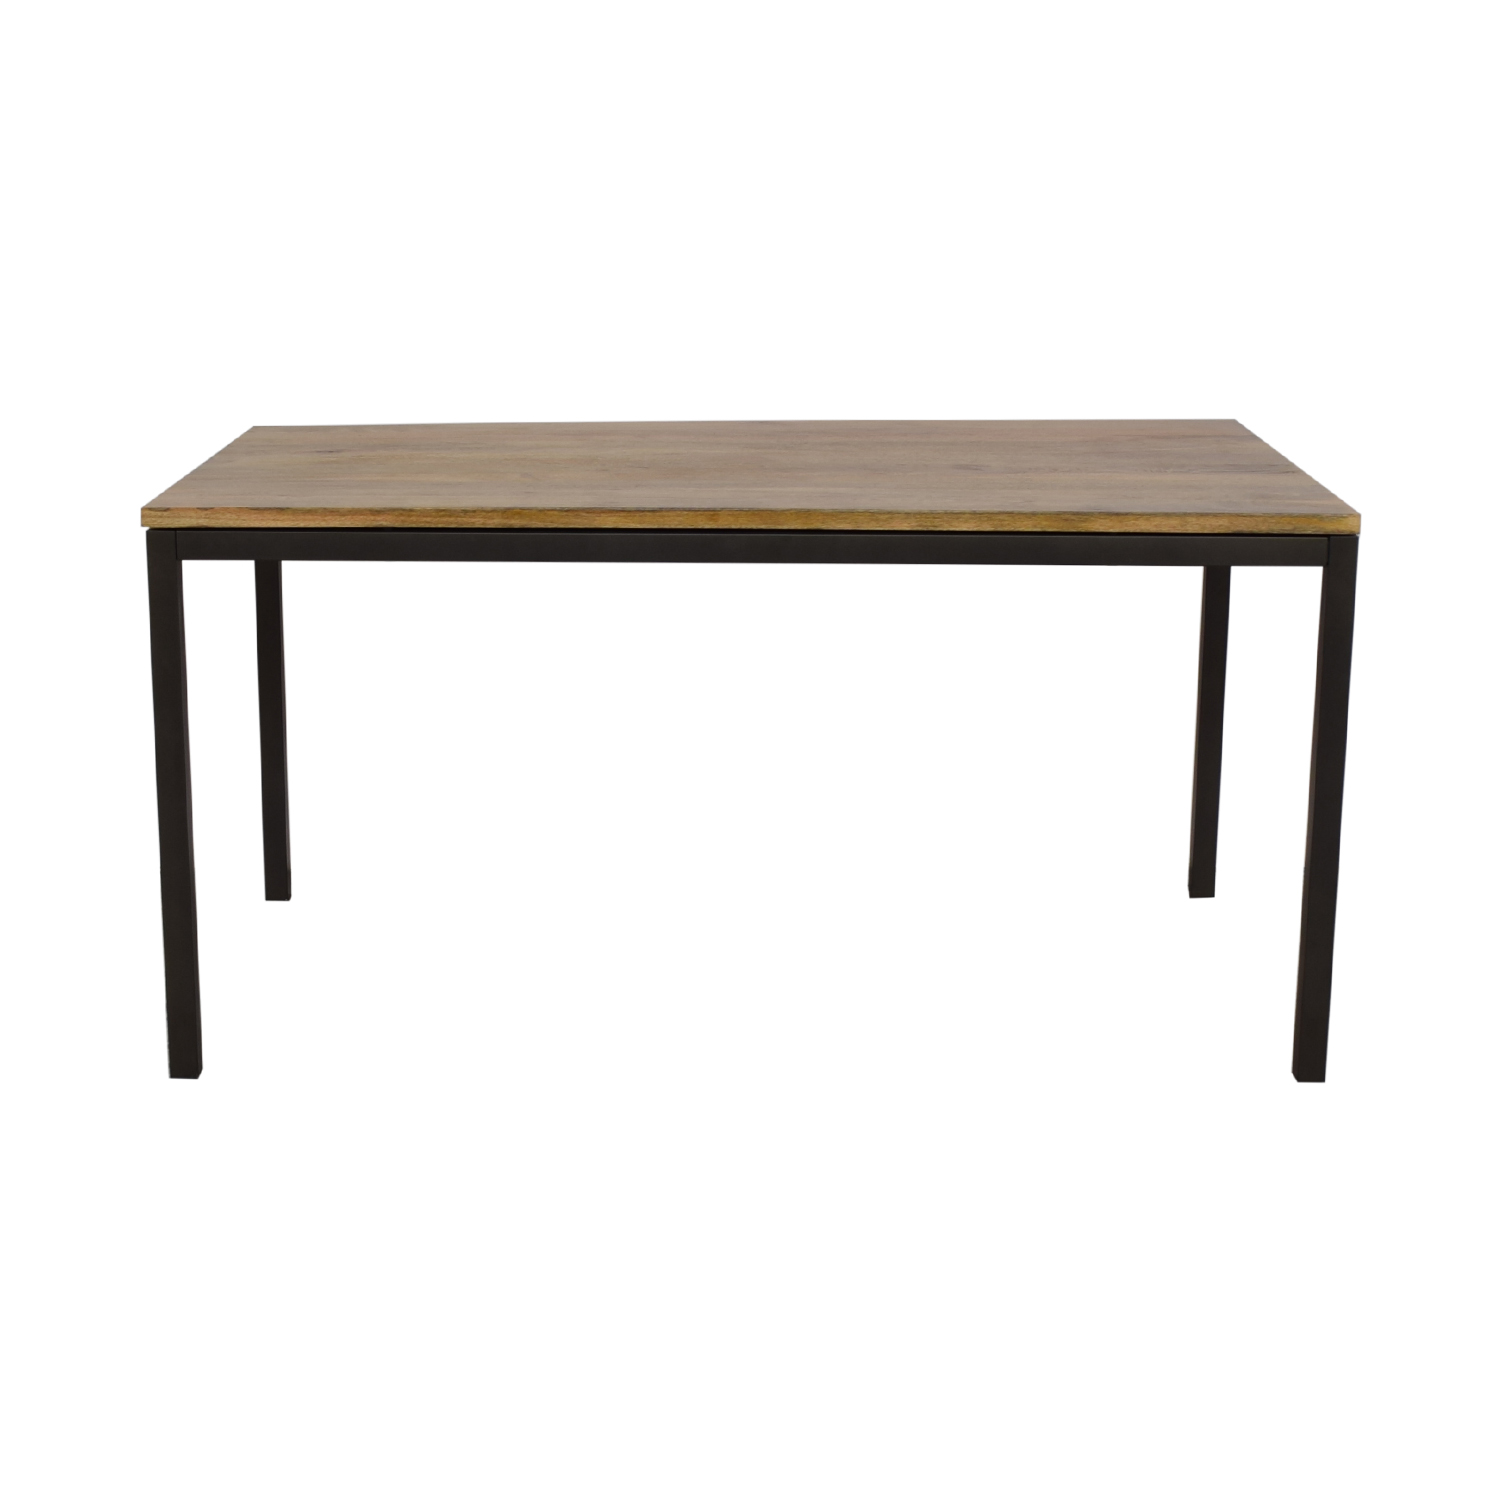 West Elm West Elm Box Frame Dining Table discount